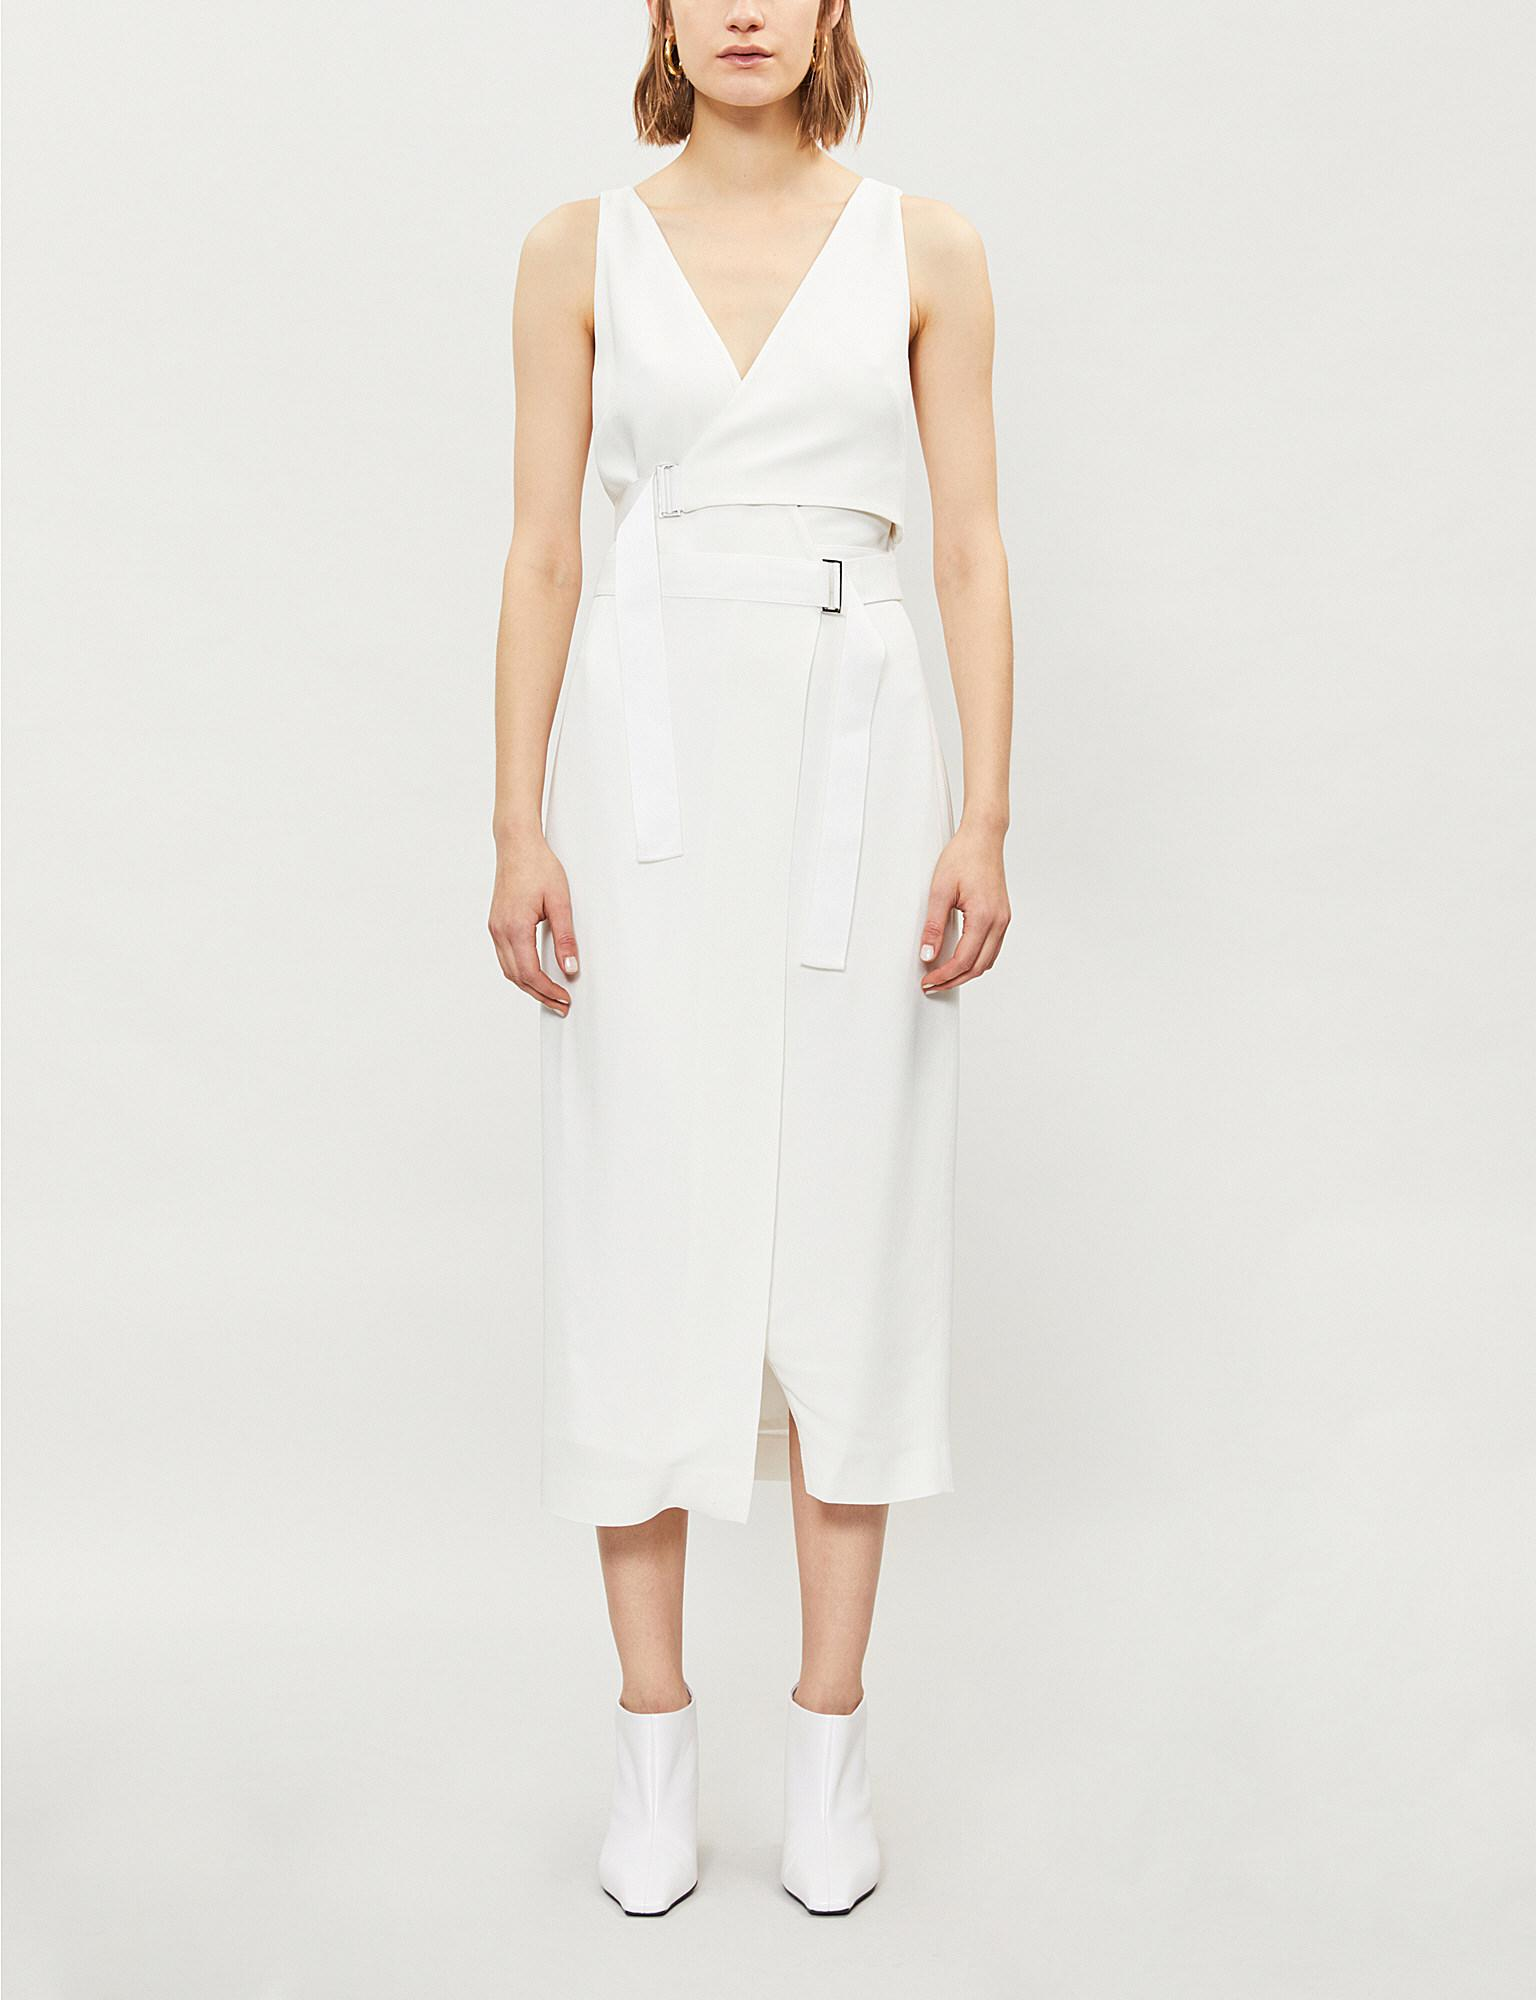 28c3f93623 Lyst - Dion Lee Holster Crepe Midi Dress in White